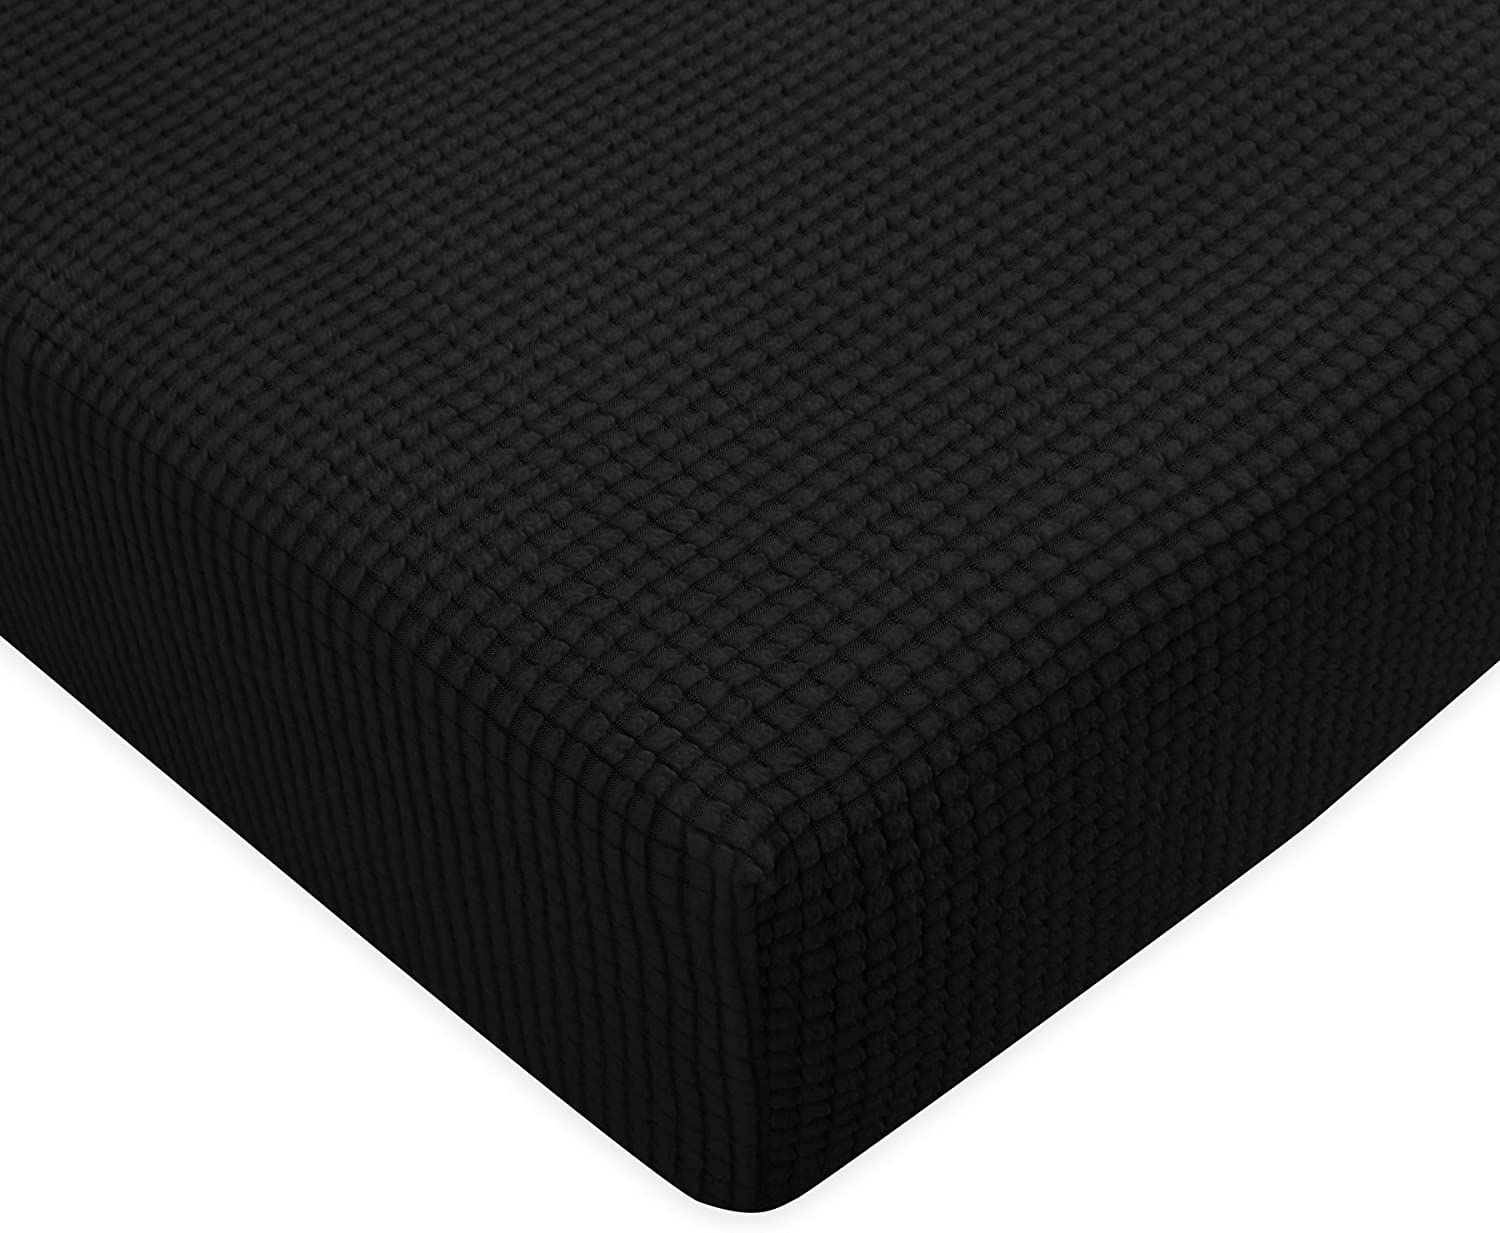 Subrtex Spandex Elastic Couch Stretch Durable Slipcover Furniture Protector Slip Cover for Settee Sofa Seat (Chair Cushion, Black)